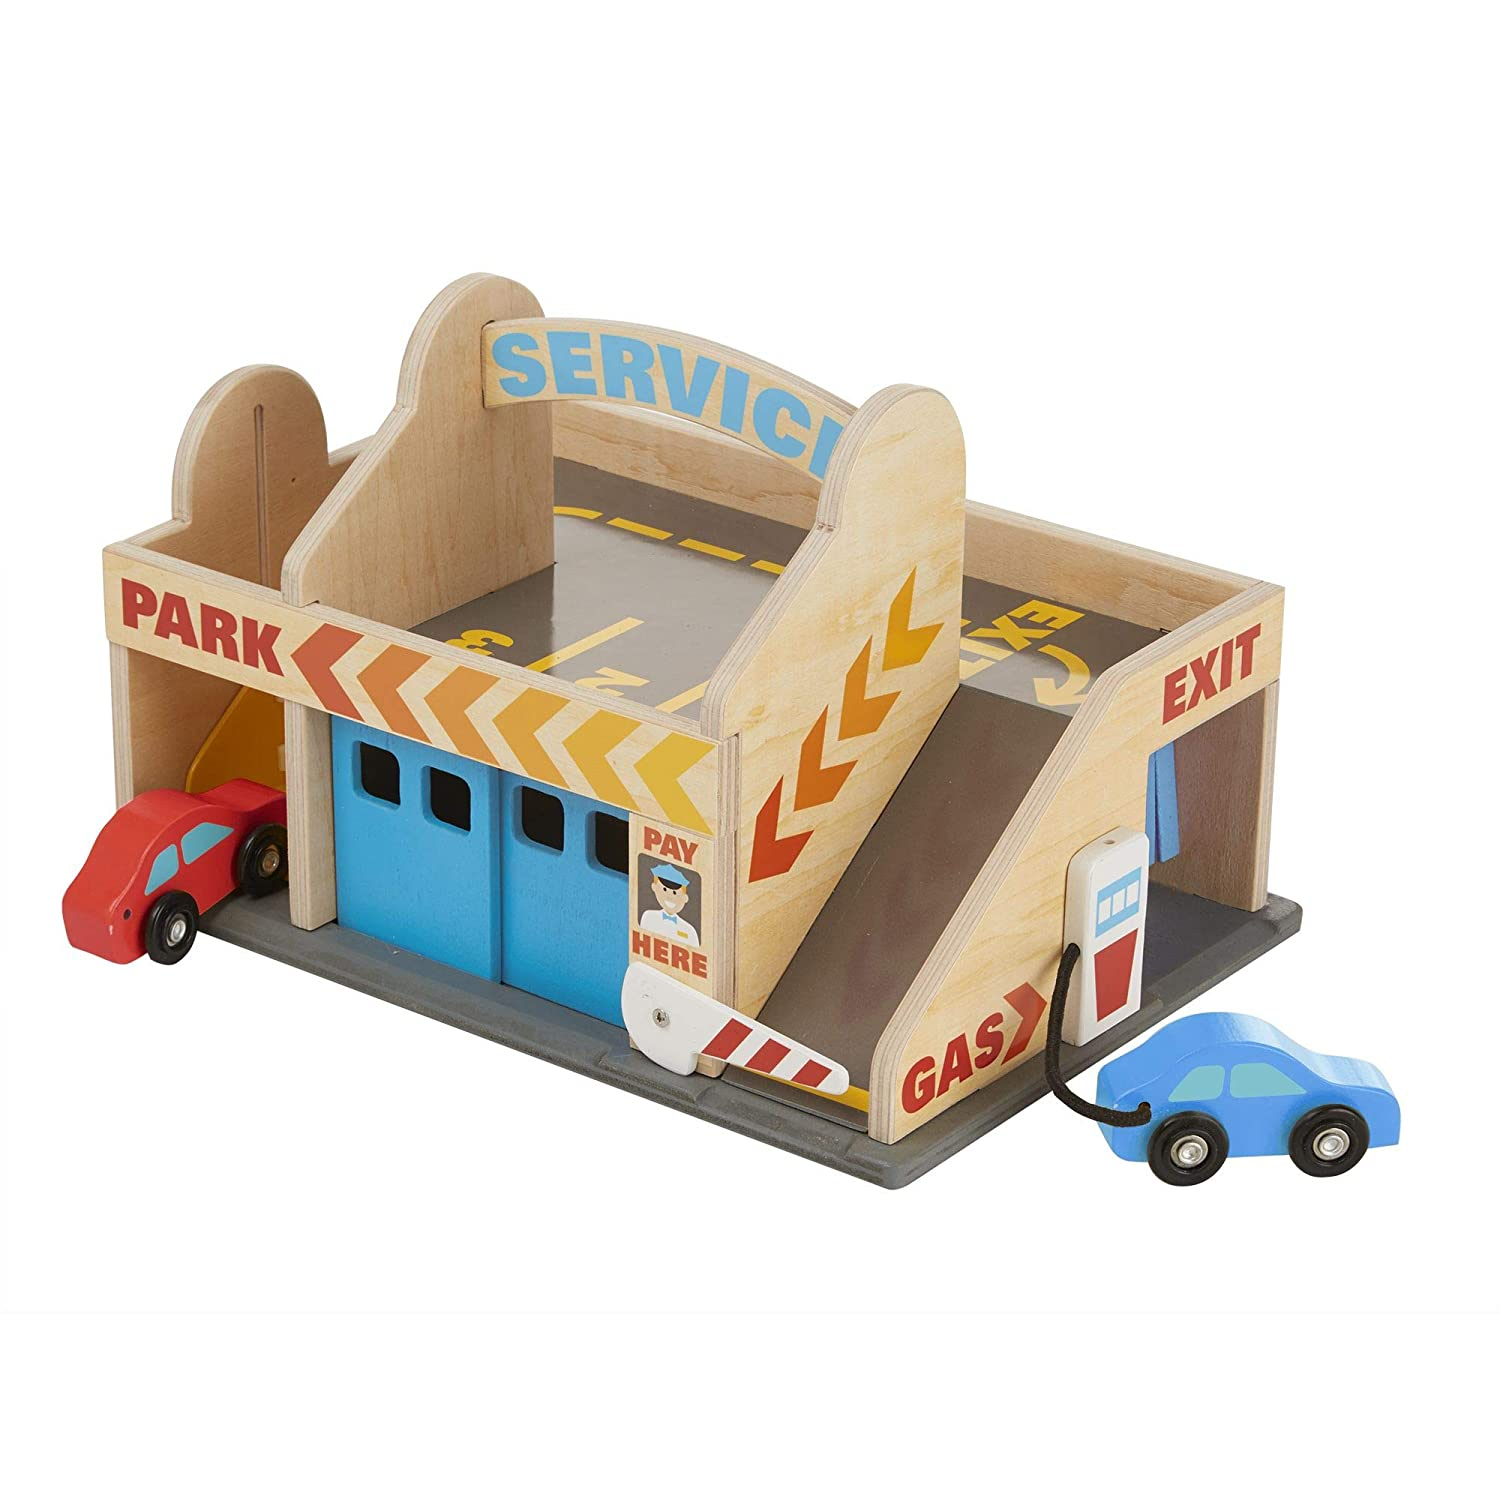 Melissa Doug Service Station Parking Garage With 2 Wooden Cars and Drive Thru Car Wash